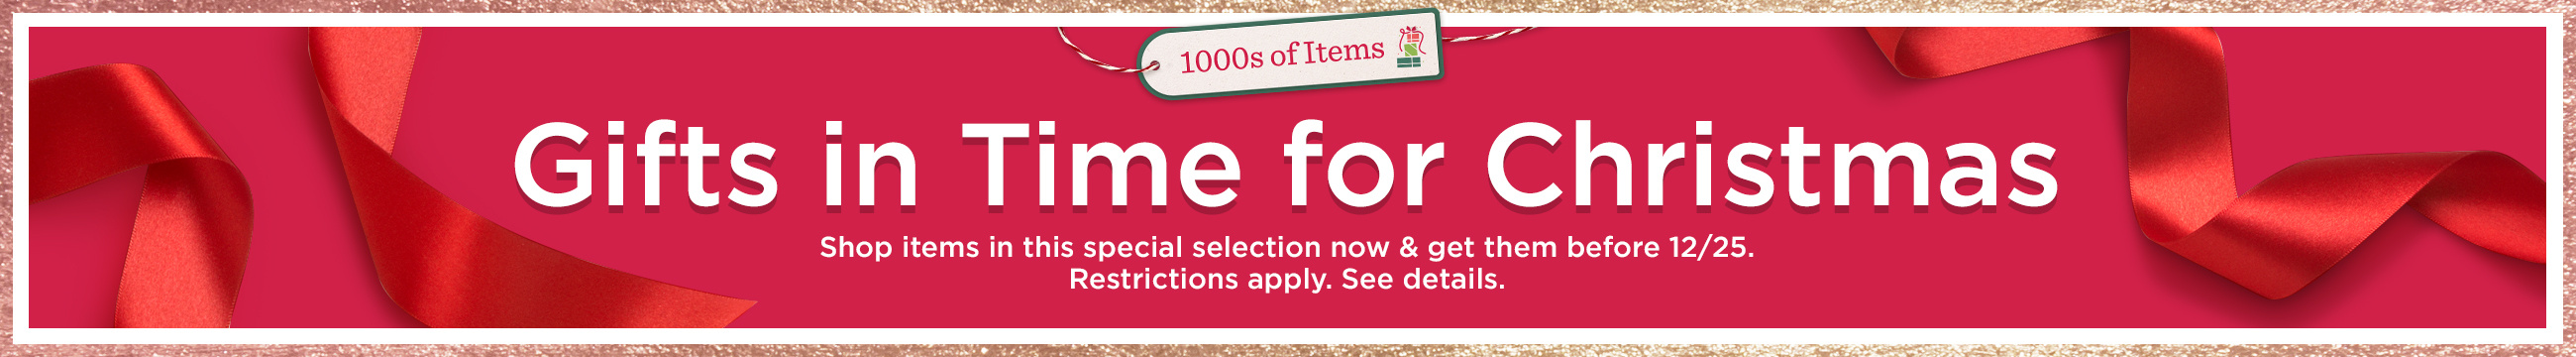 1000s of Items — Gifts in Time for Christmas — Shop items in this special selection now & get them before 12/25. Restrictions apply. See details.